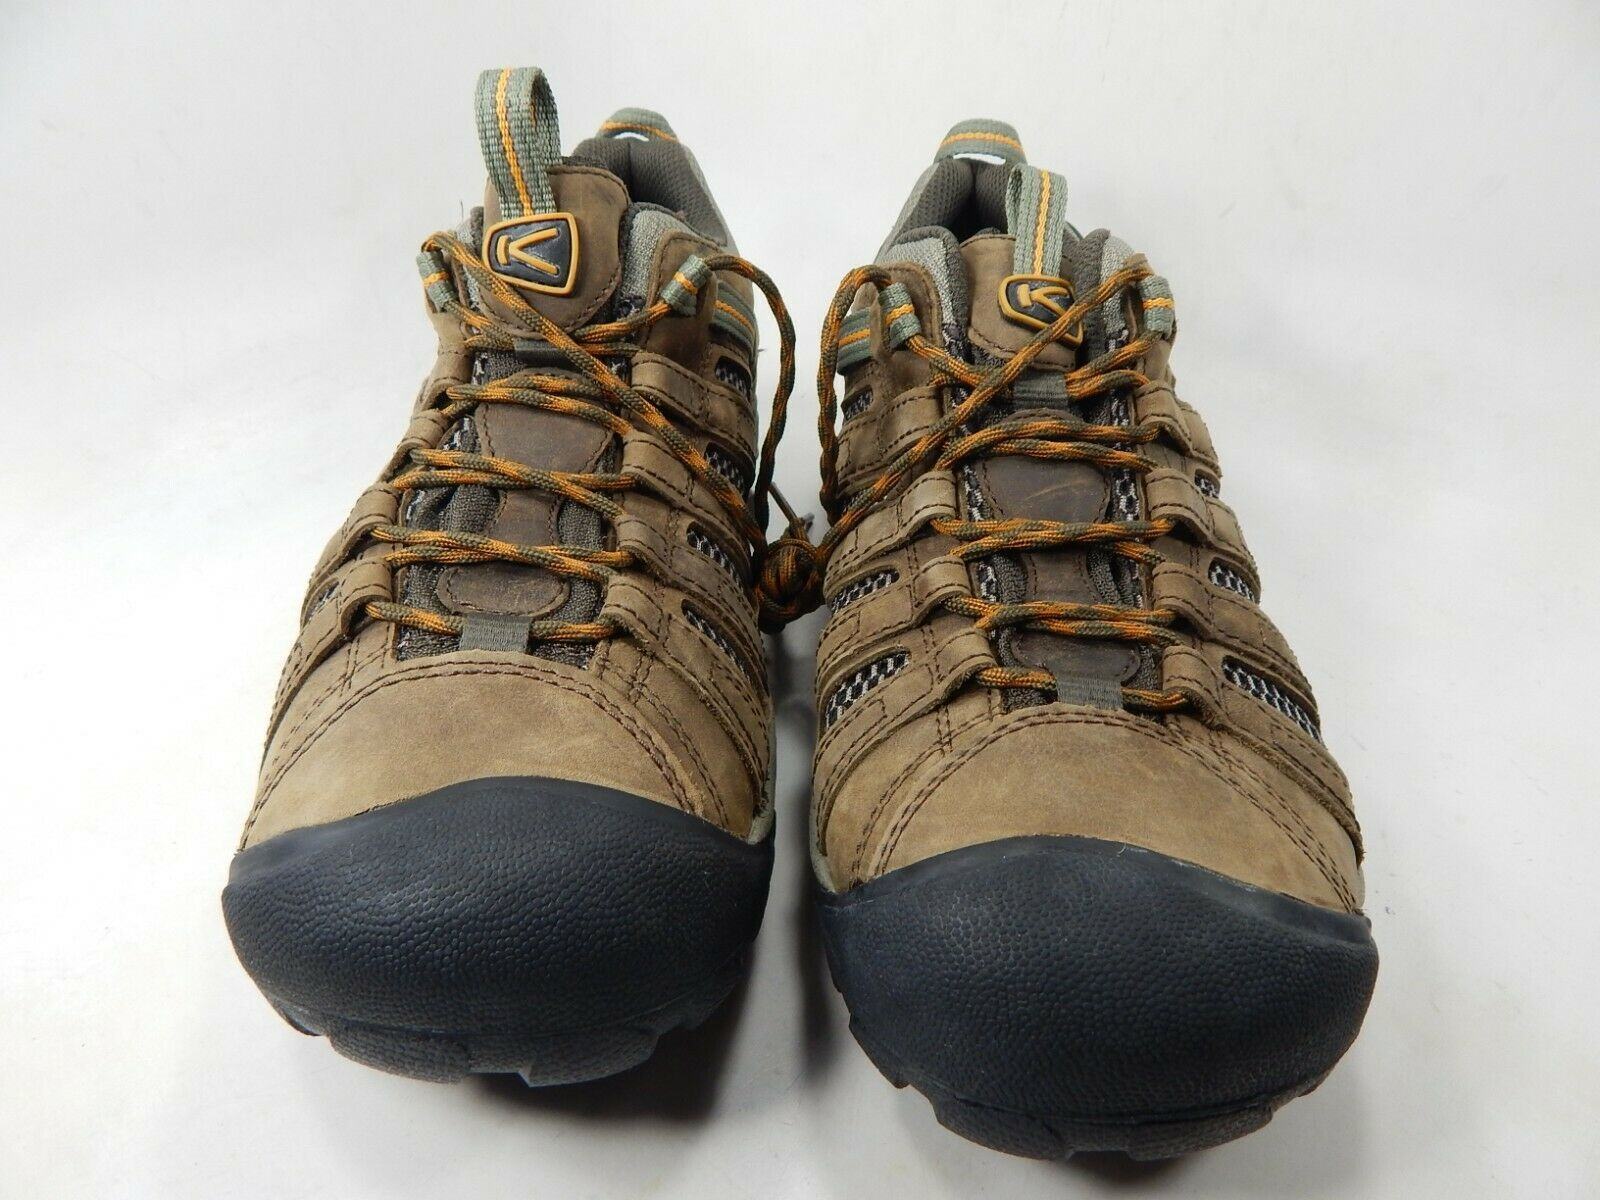 Keen Voyageur Low Top Size US 10.5 M (D) EU 44 Men's Trail Hiking Shoes Brown image 2